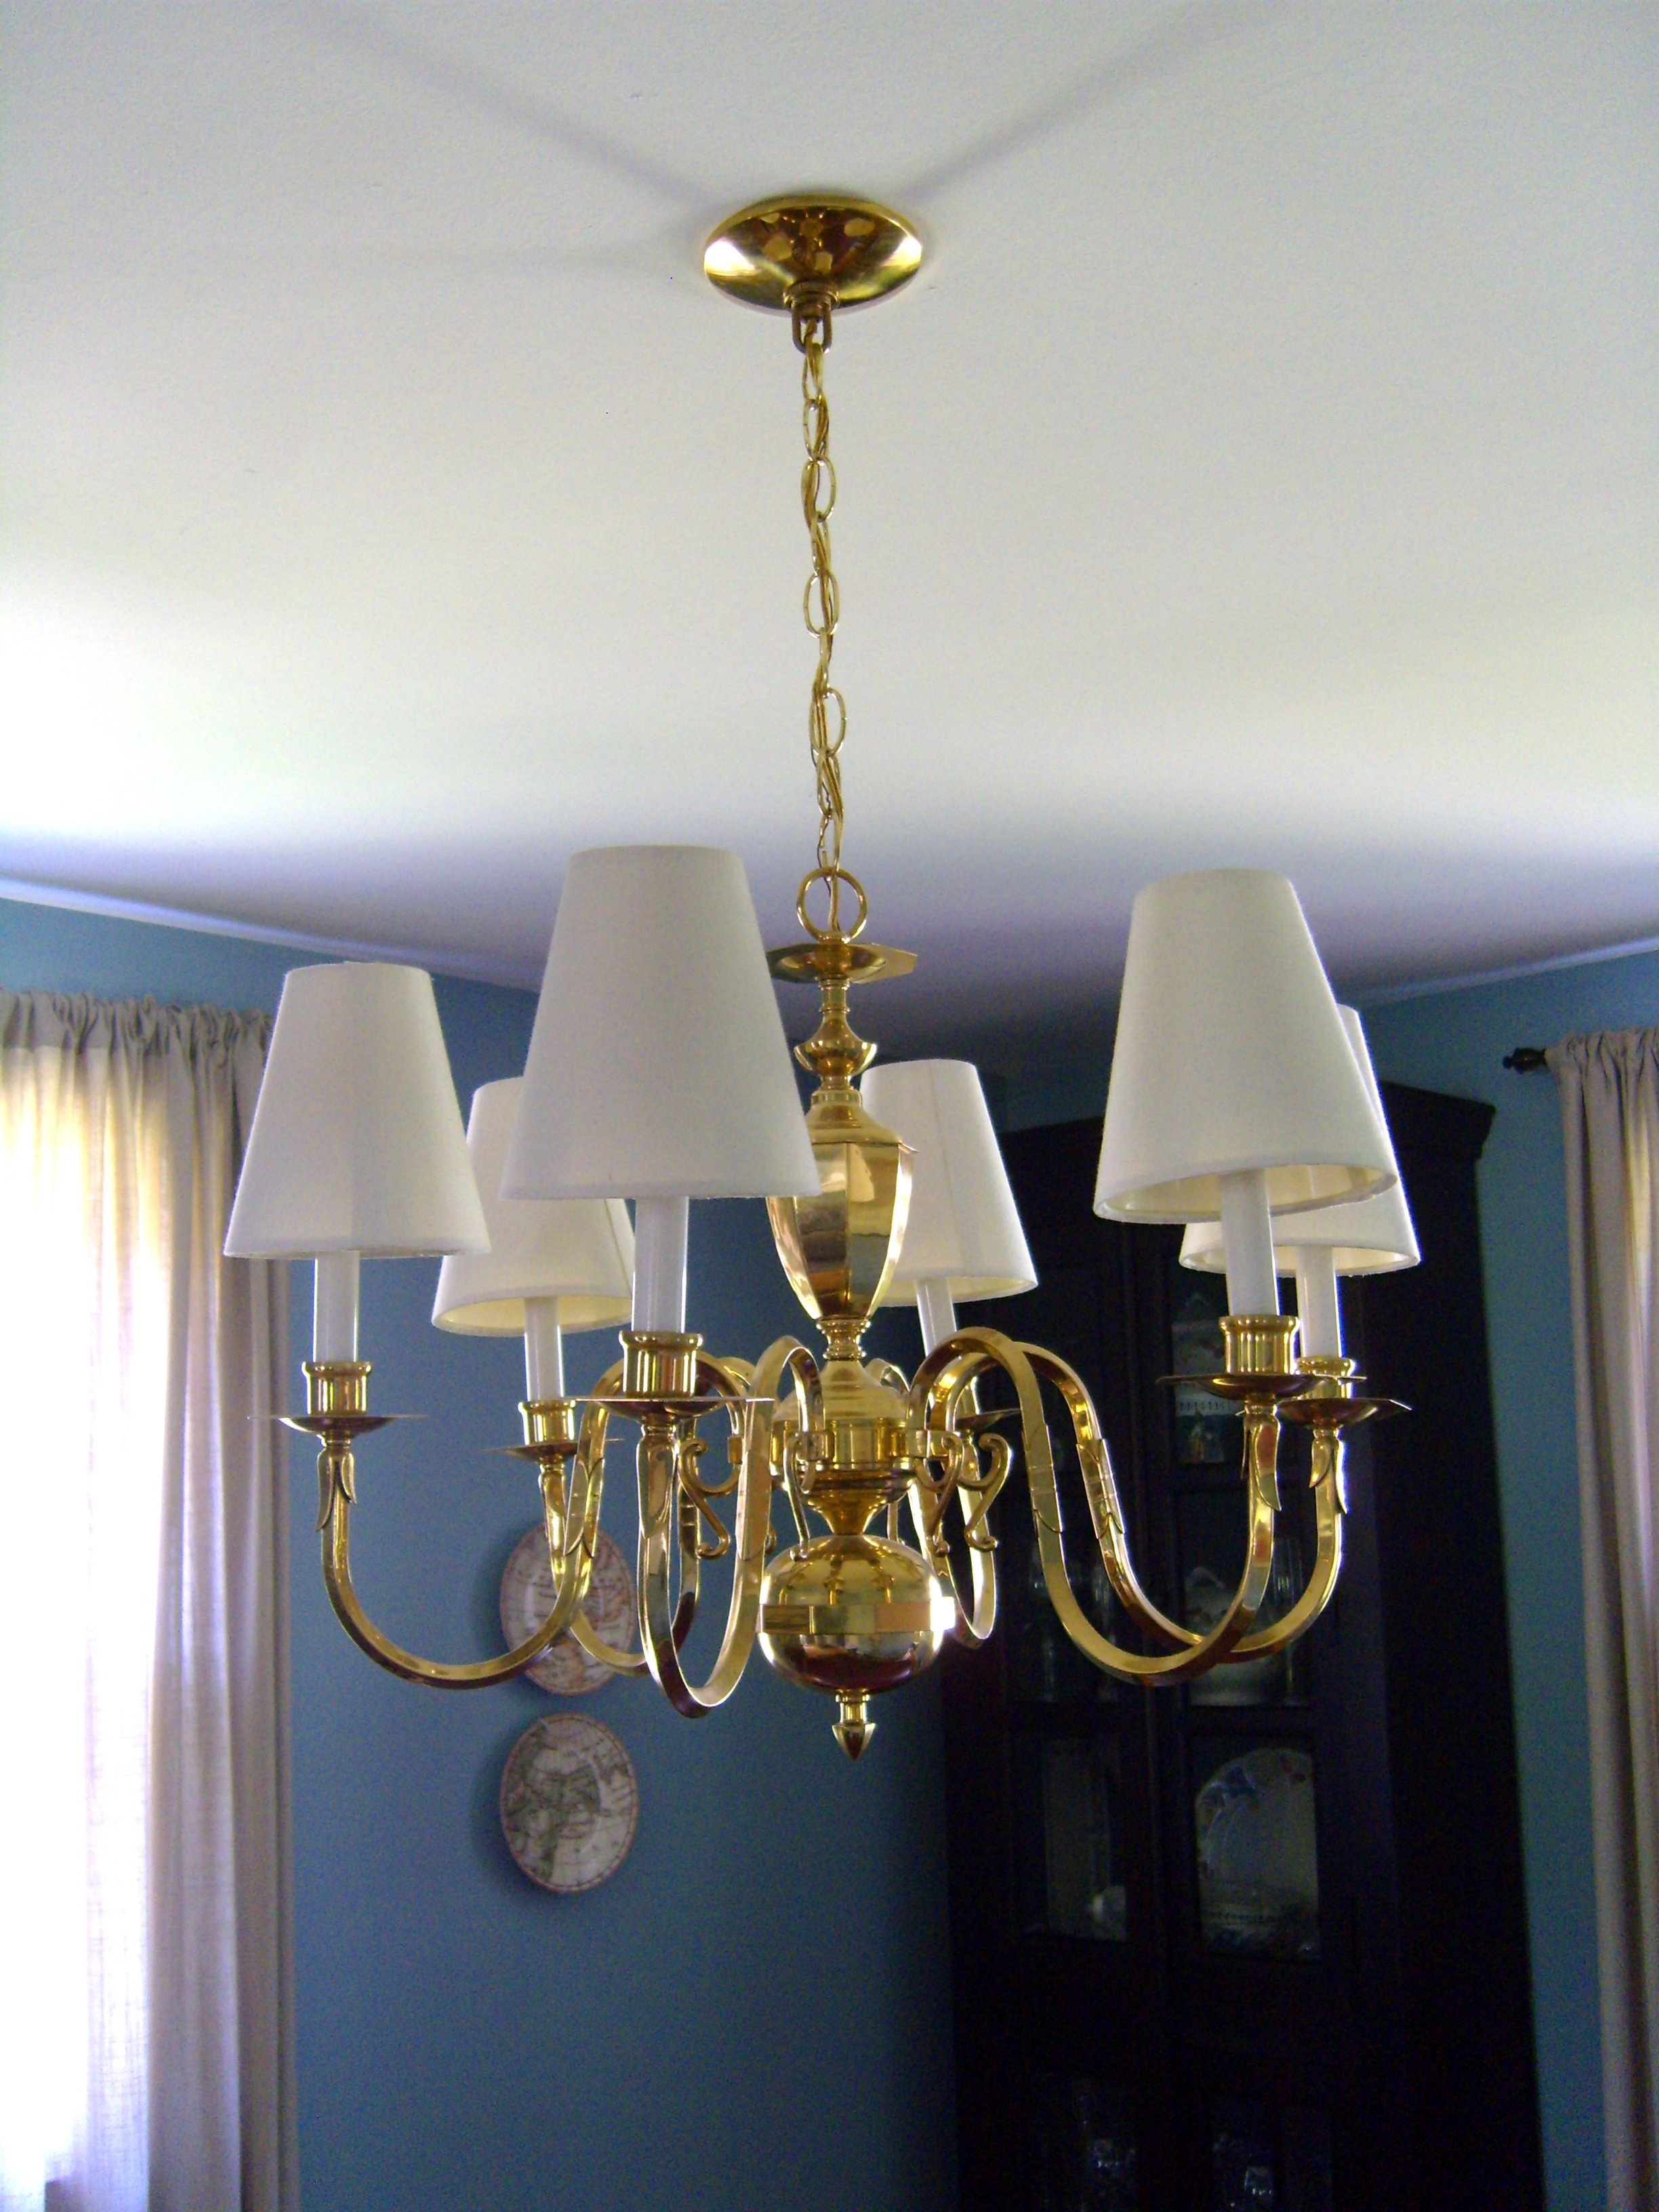 Chandeliers With Lamp Shades Pertaining To Widely Used Chandelier Lamp Shades Drum Shape Tab Blackover Drumless Less Shade (View 2 of 15)